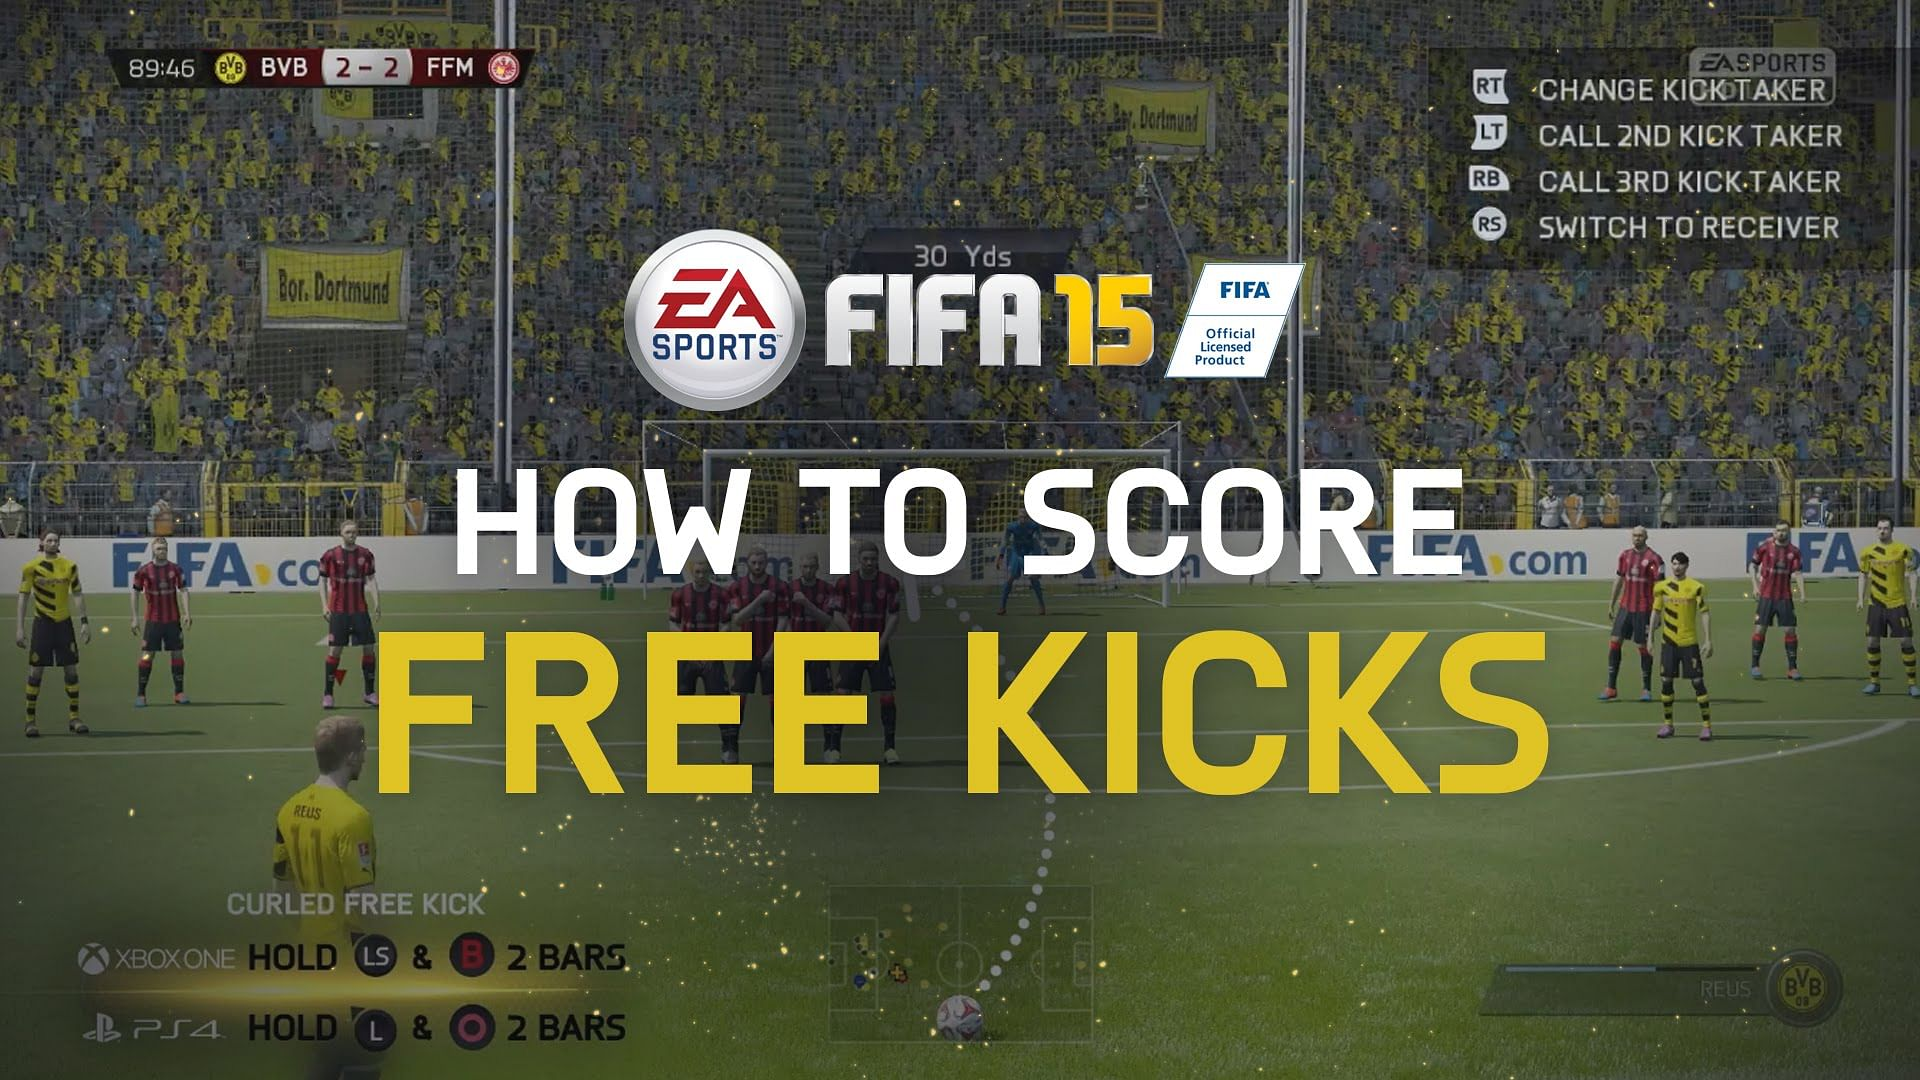 FIFA 15 - Tutorial for scoring Free Kicks